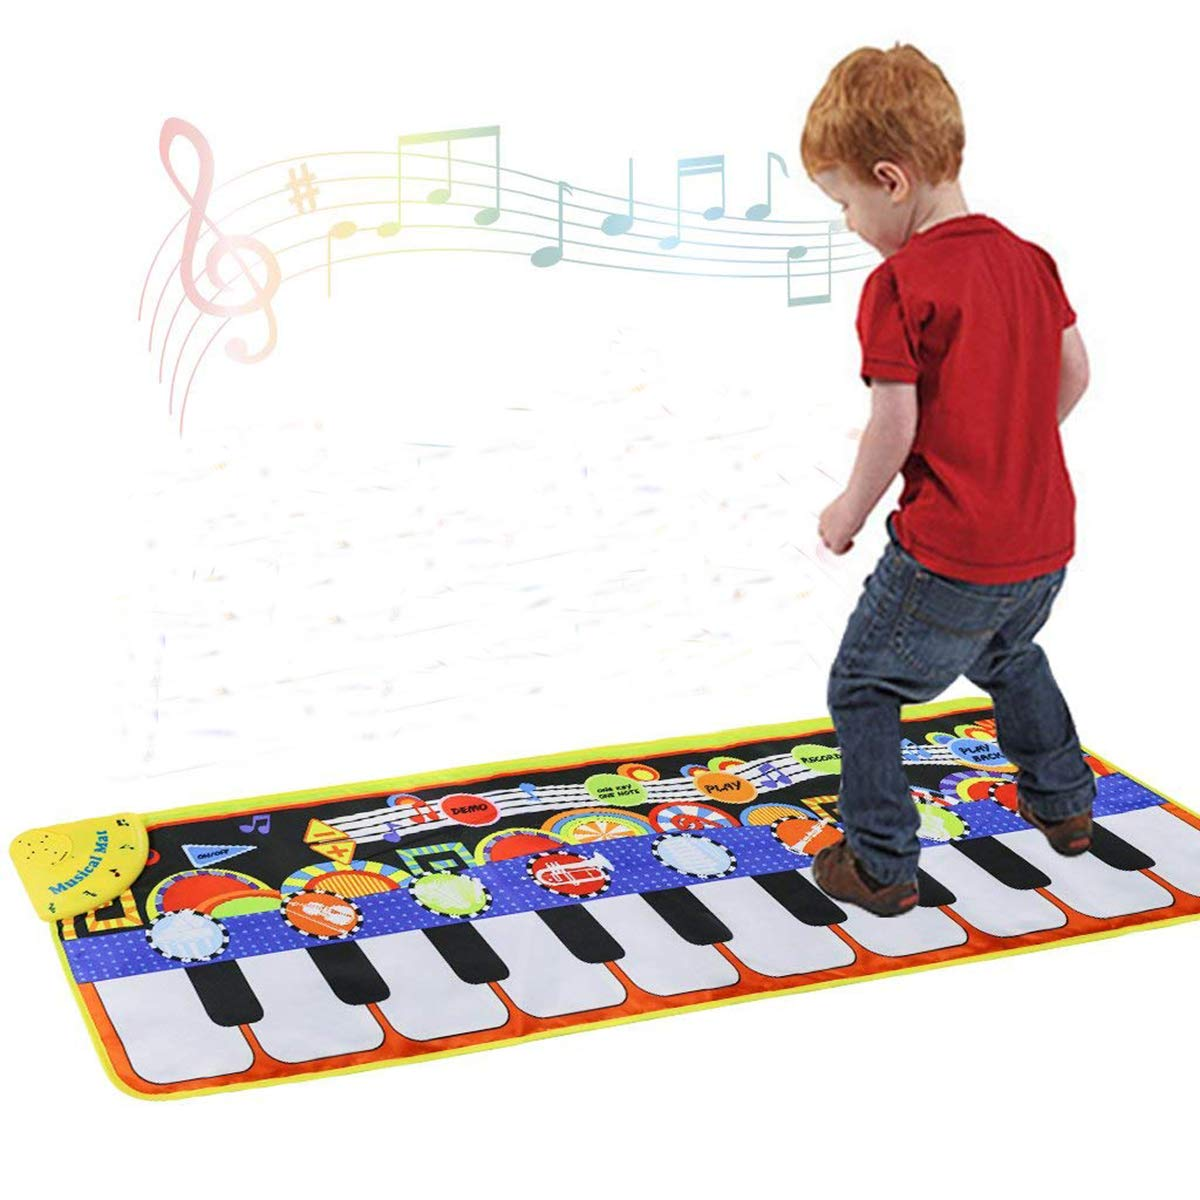 Cyiecw Piano Music Mat, Keyboard Play Mat Music Dance Mat with 19 Keys Piano Mat, 8 Selectable Musical Instruments Build-in Speaker & Recording Function for Kids Toddler Girls Boys, 43.3'' x14.2''